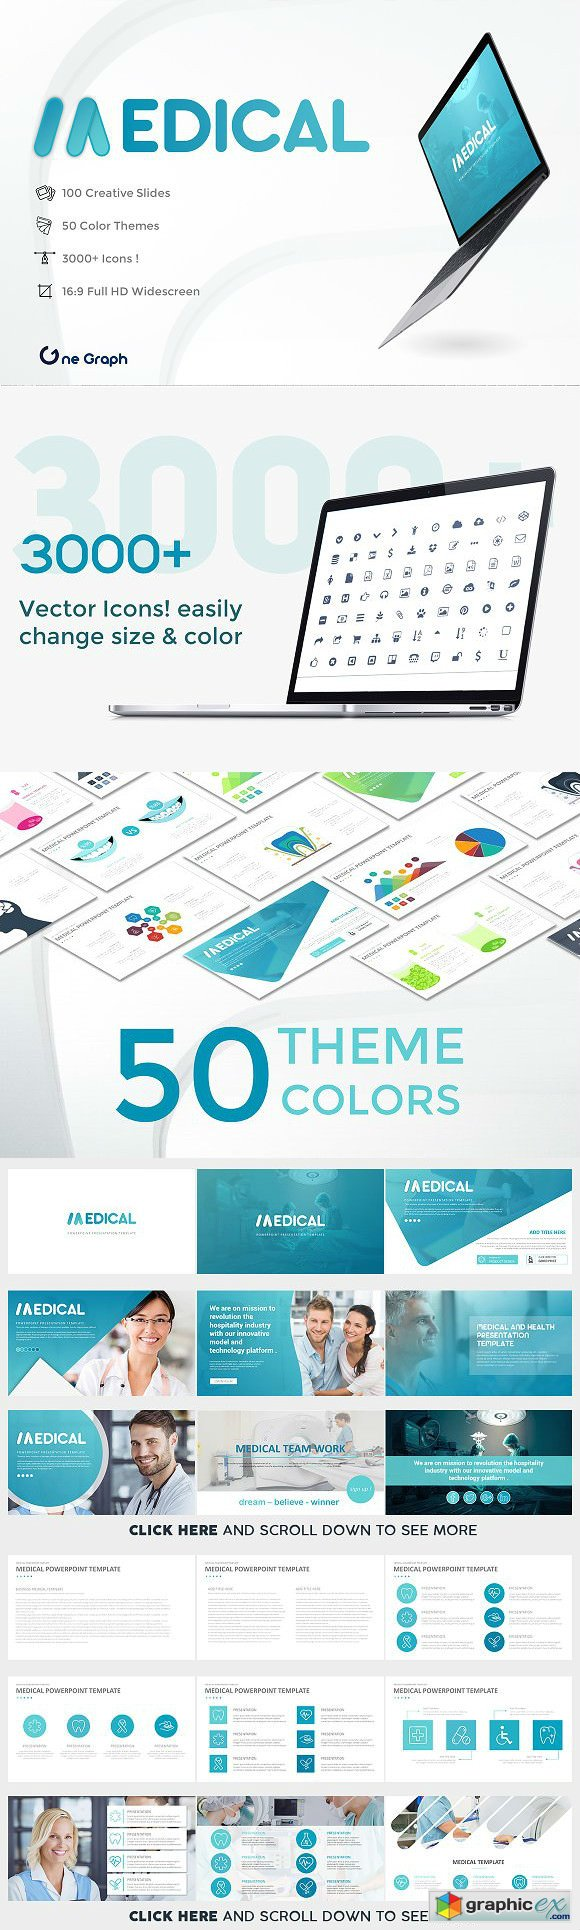 100 free medical powerpoint templates free animated free medical powerpoint templates medical powerpoint template 2036937 free download vector stock toneelgroepblik Image collections